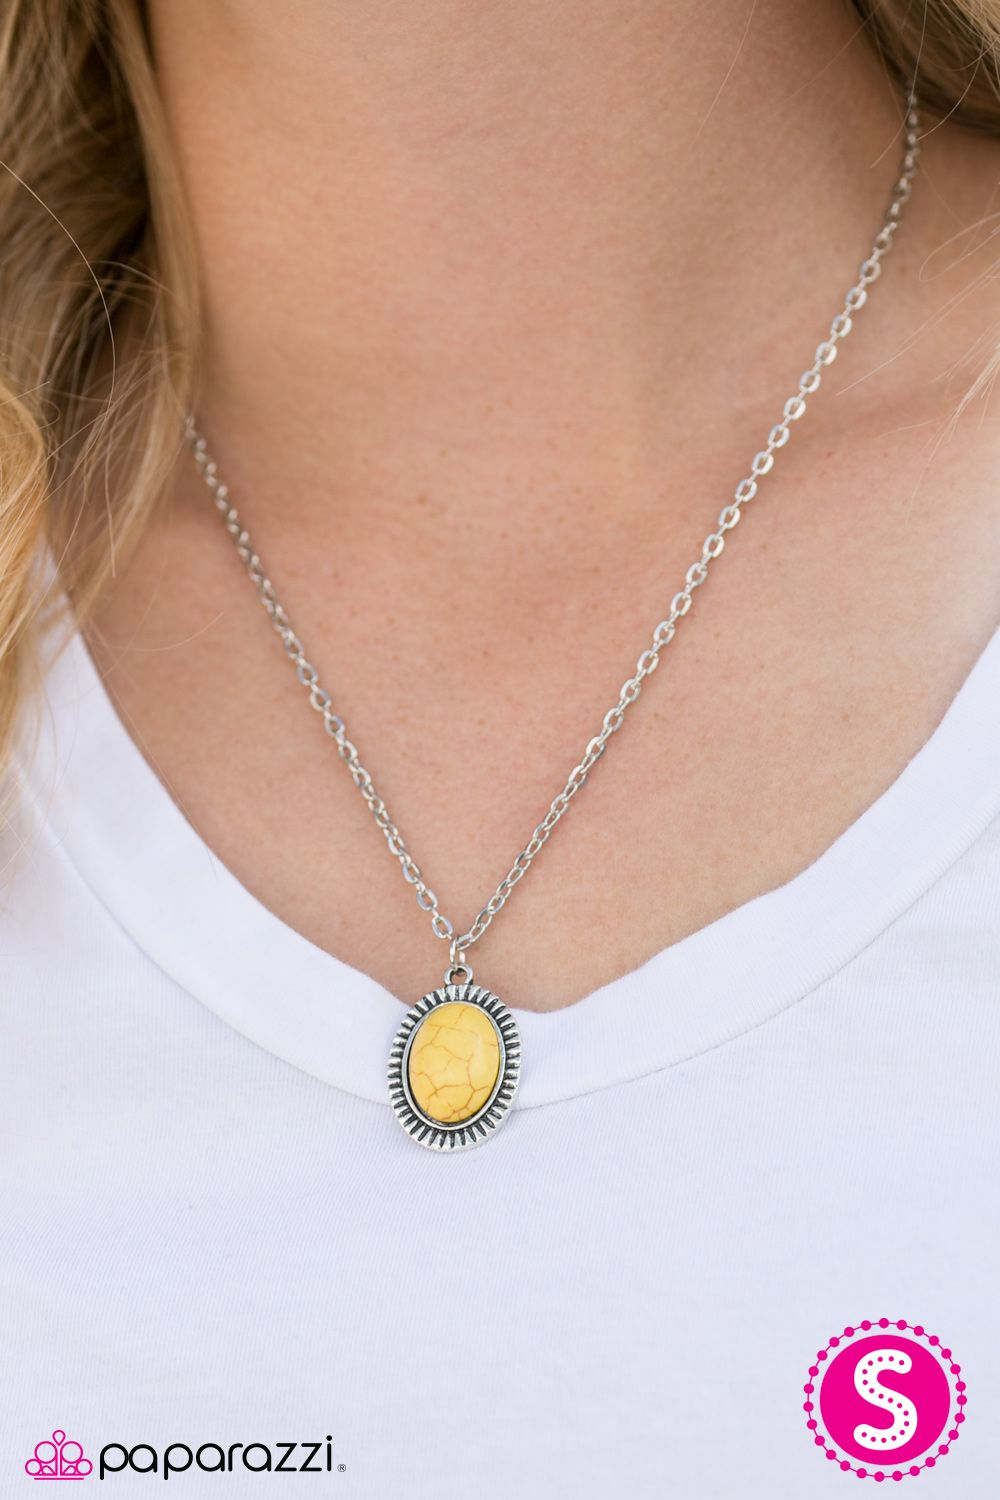 CAST IN SANDSTONE - YELLOW ($5) A sunny yellow stone is pressed into the center of a textured silver frame, creating a perfect pop of color below the collar. Features an adjustable clasp closure.